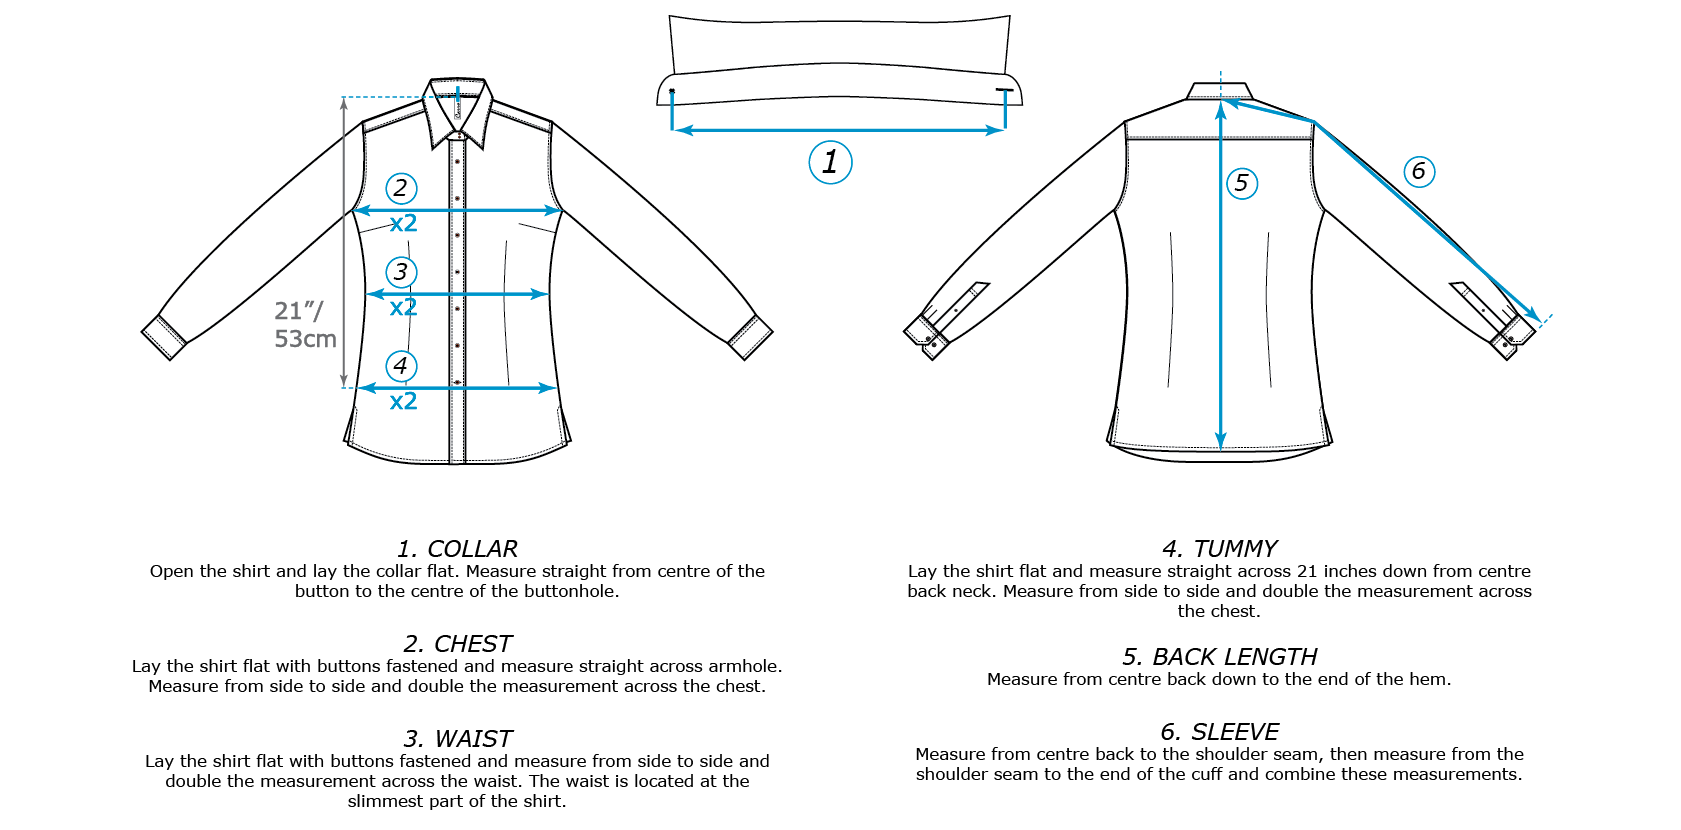 Size guide for Carro women's shirt. Measurement visual.